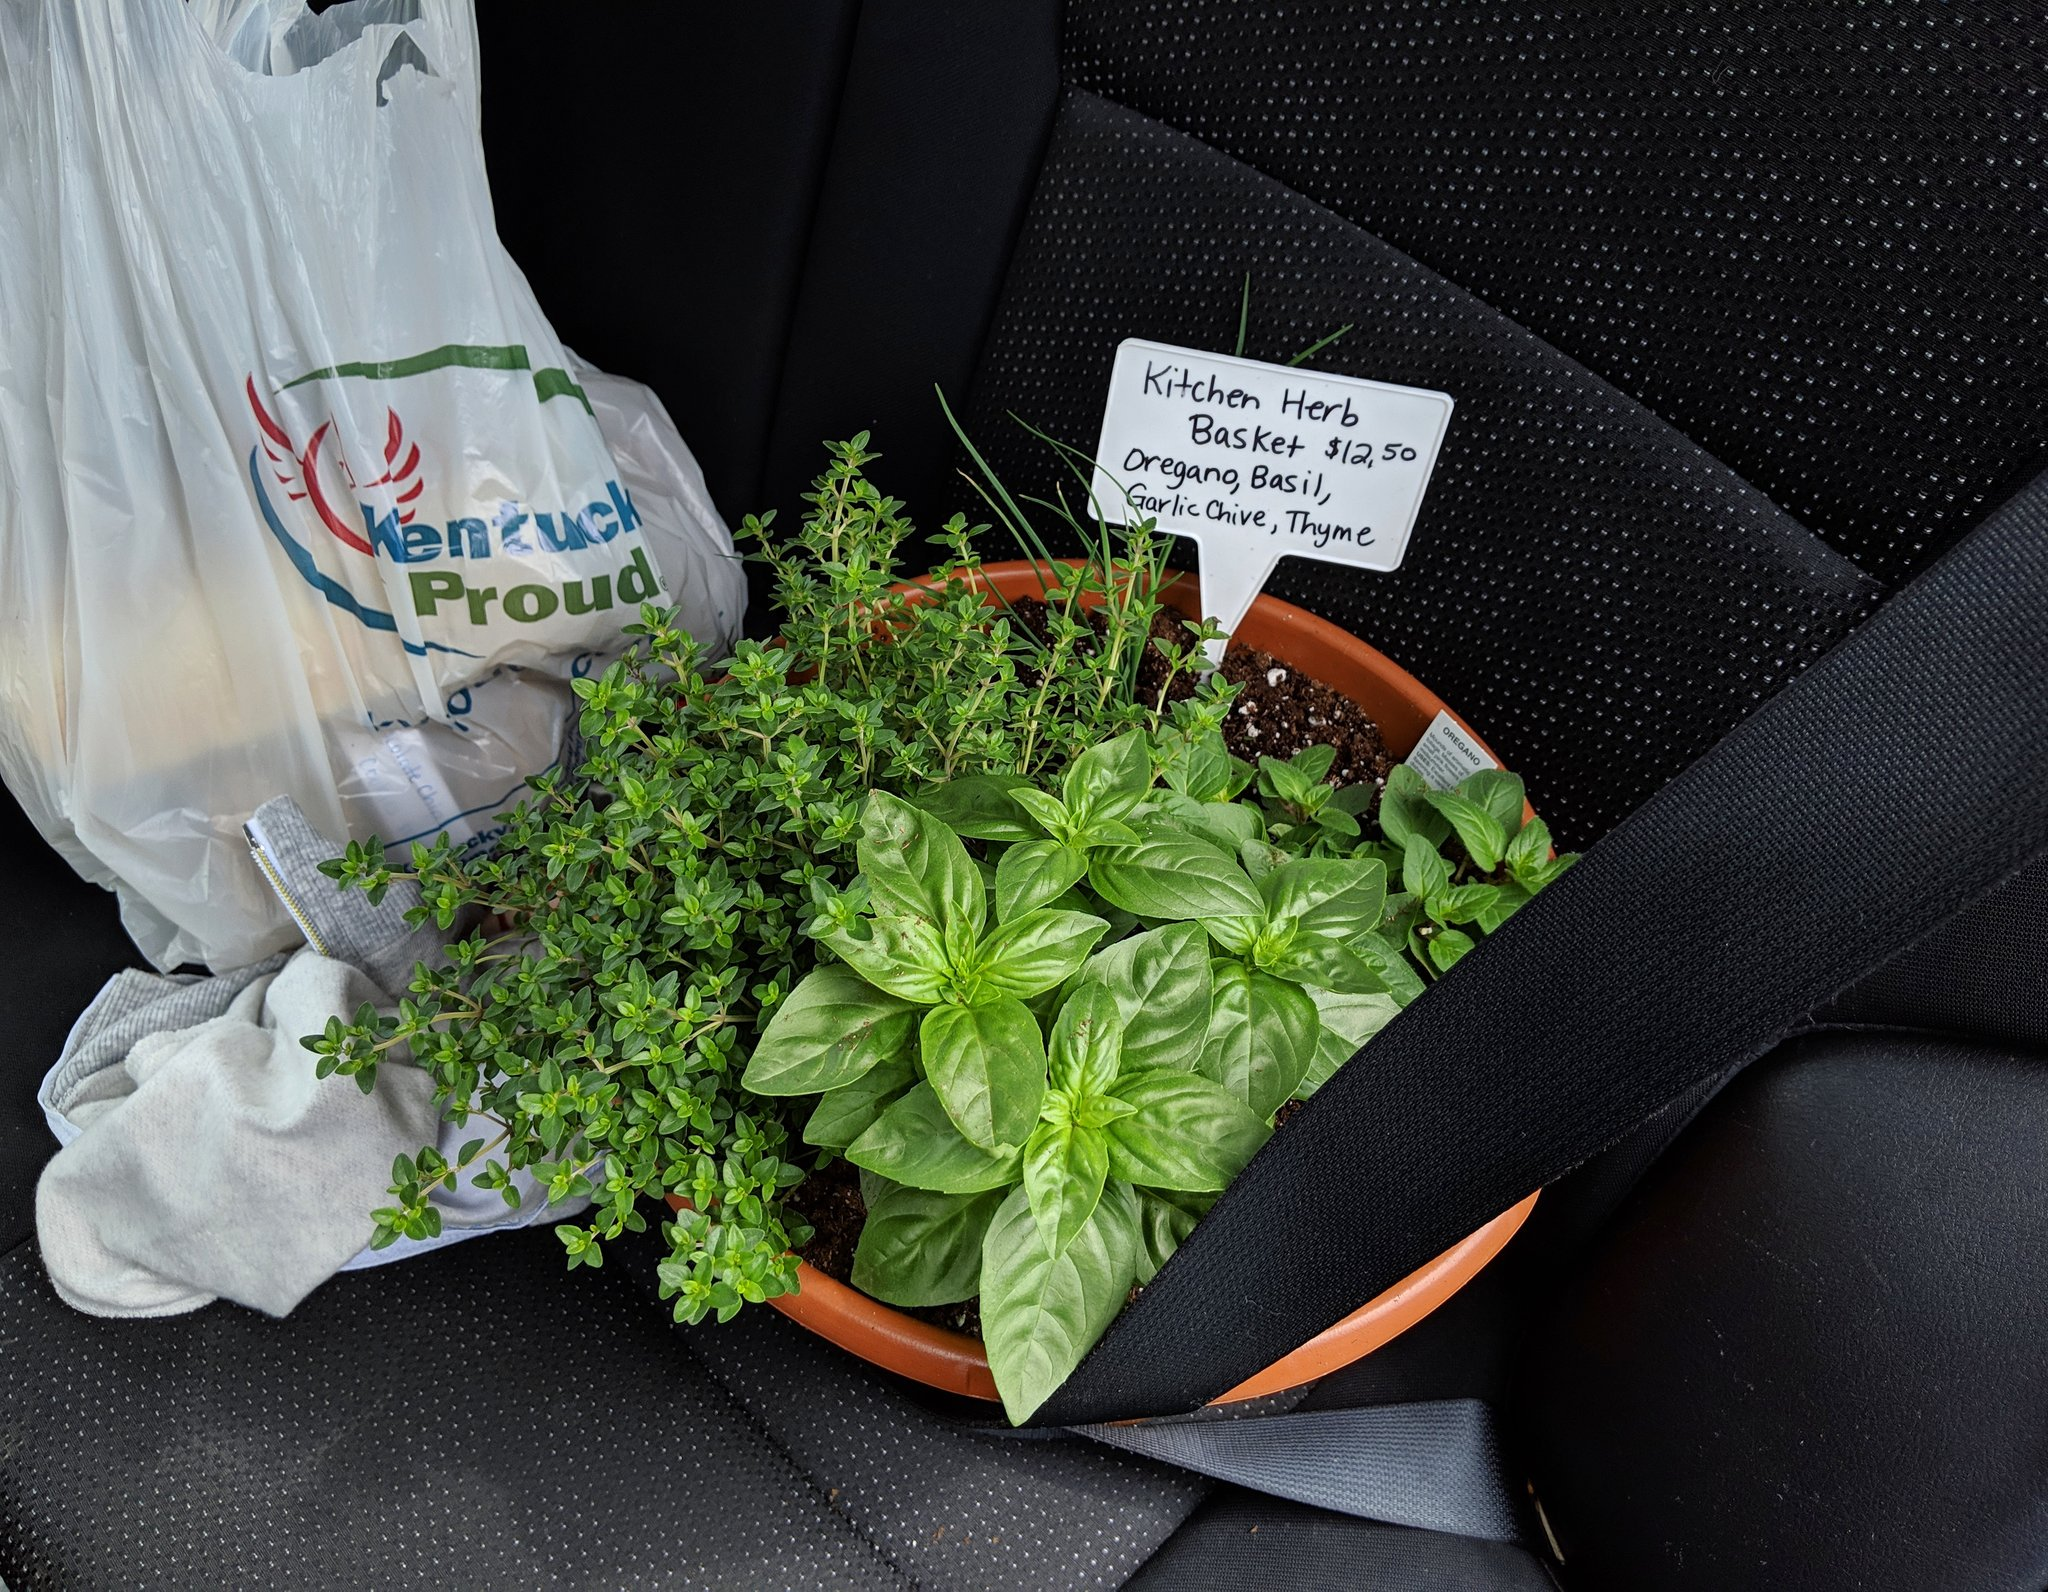 A pot of herbs from the Griffith Family Farm stand which has been secured with a seat belt inside a car. Next to the pot is a Kentucky Proud shopping bag.